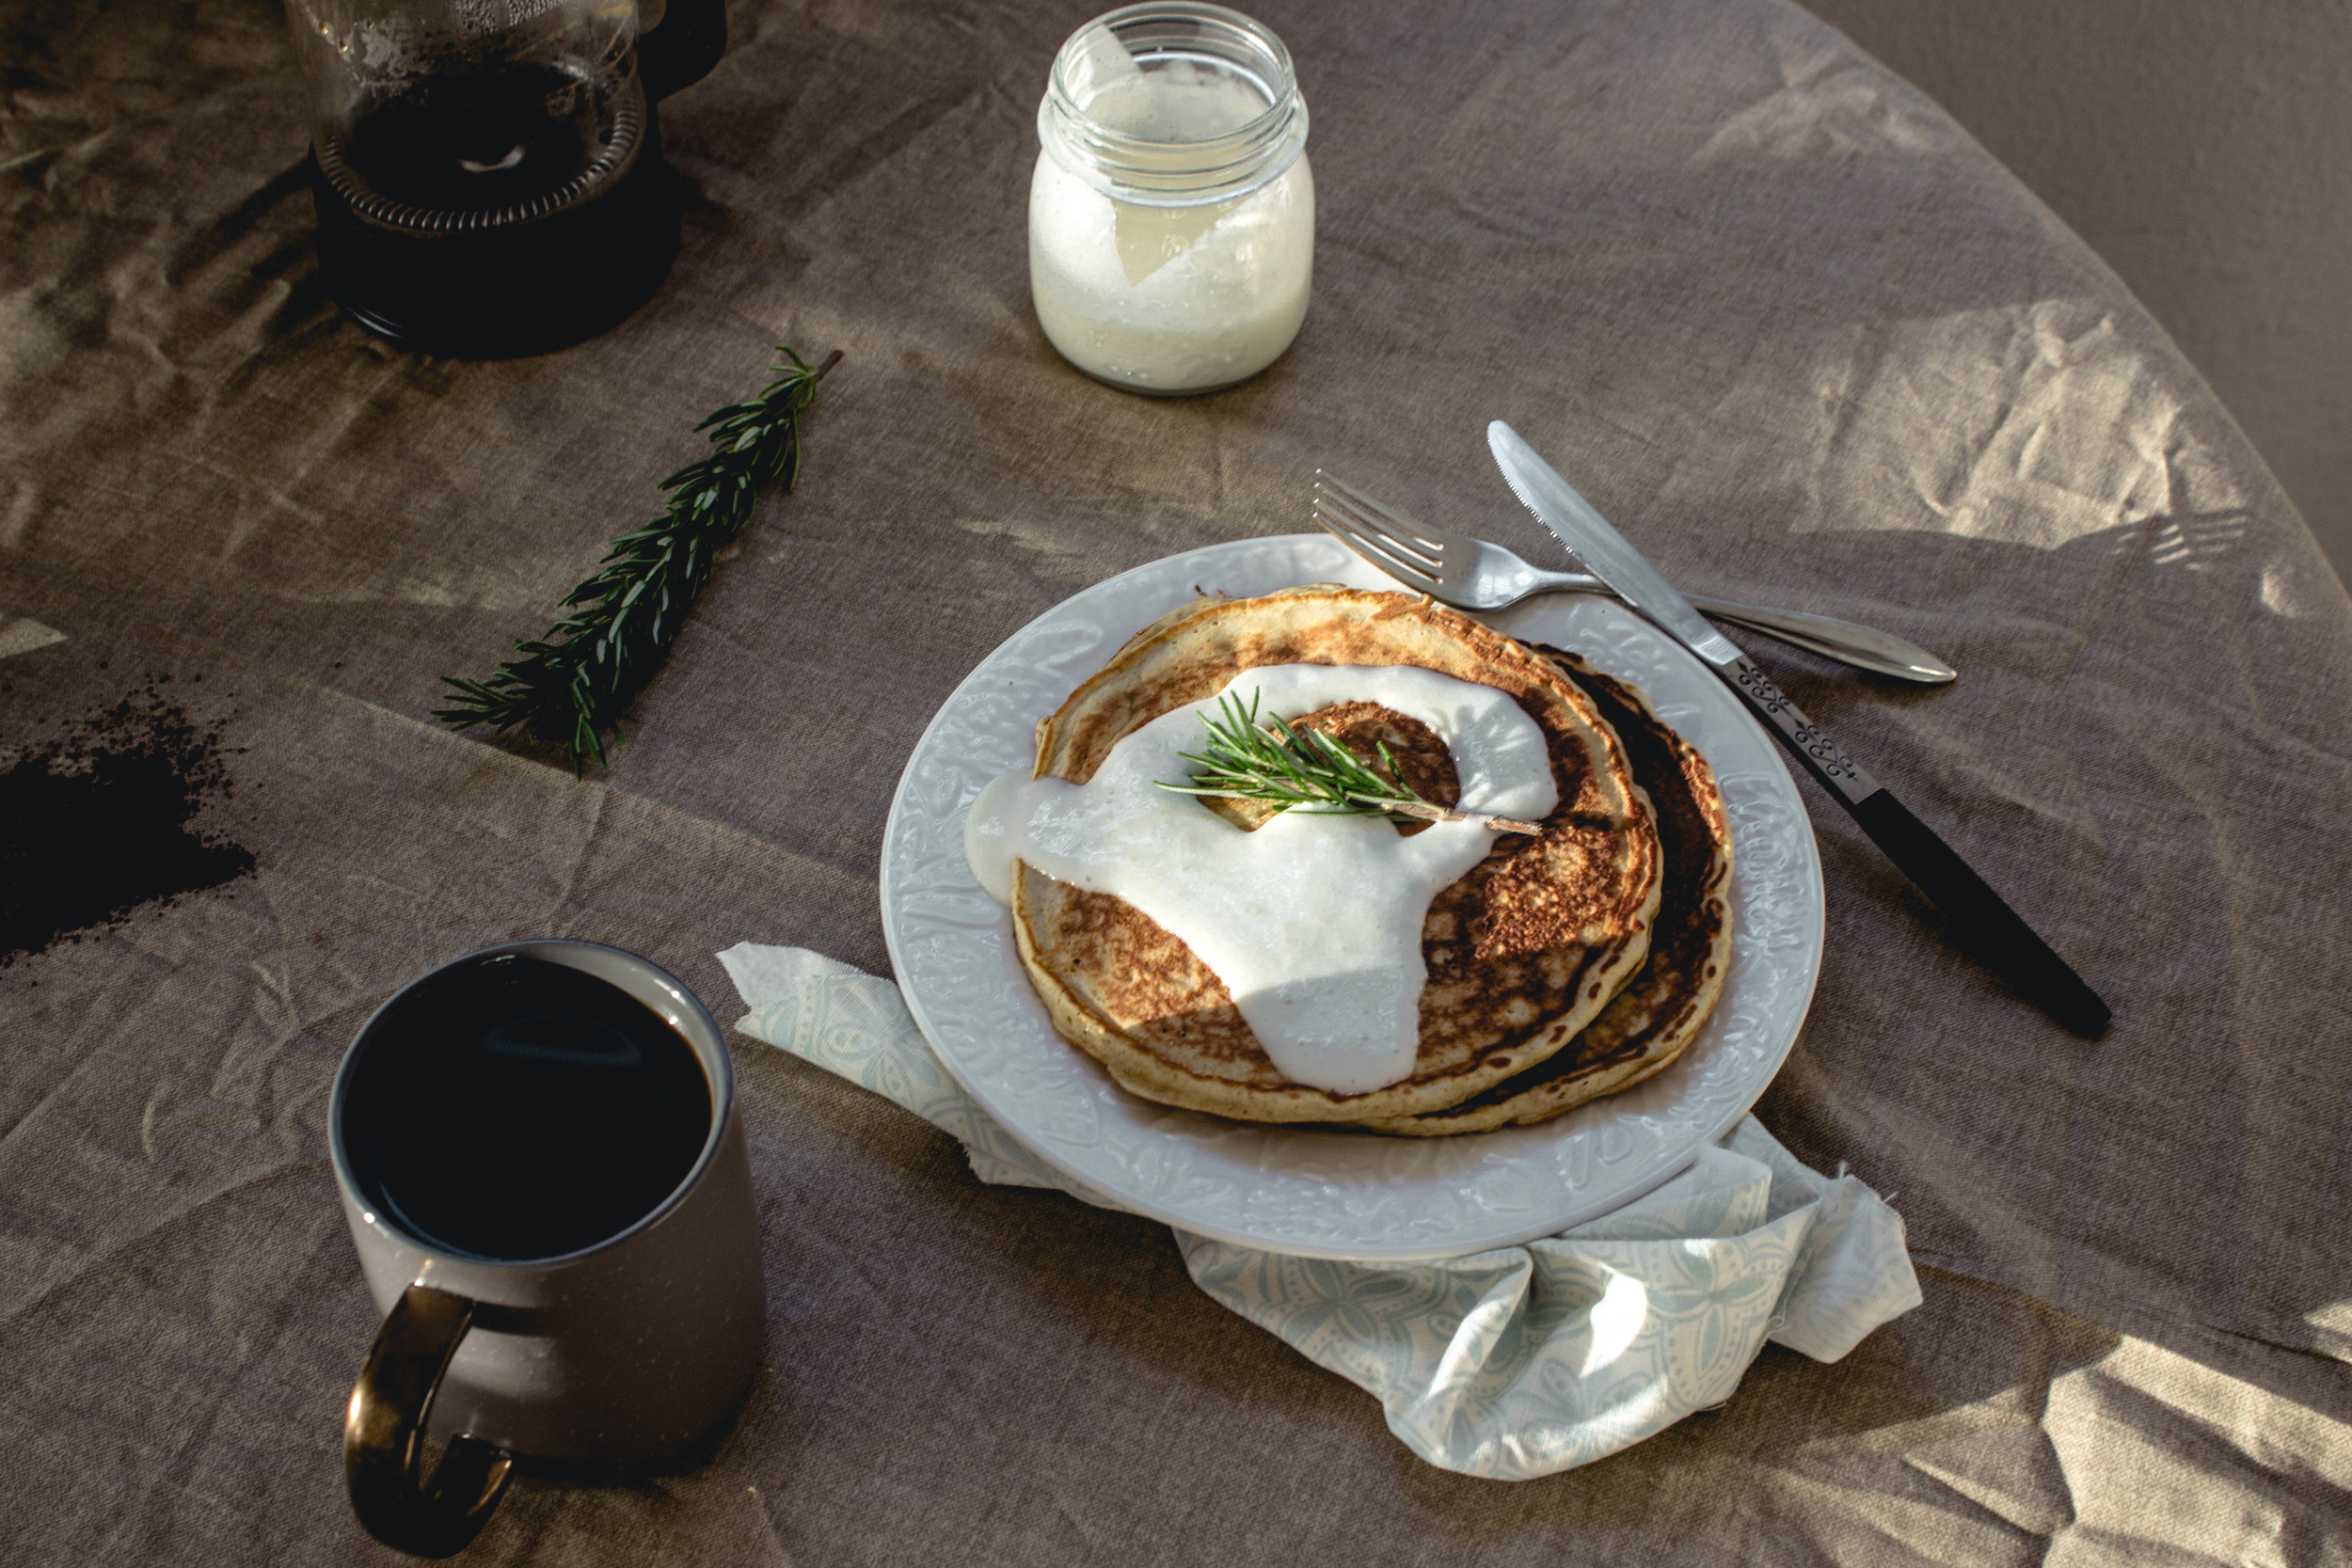 Groundwork Coffee review and lemon icing pancakes recipe | fit for the soul